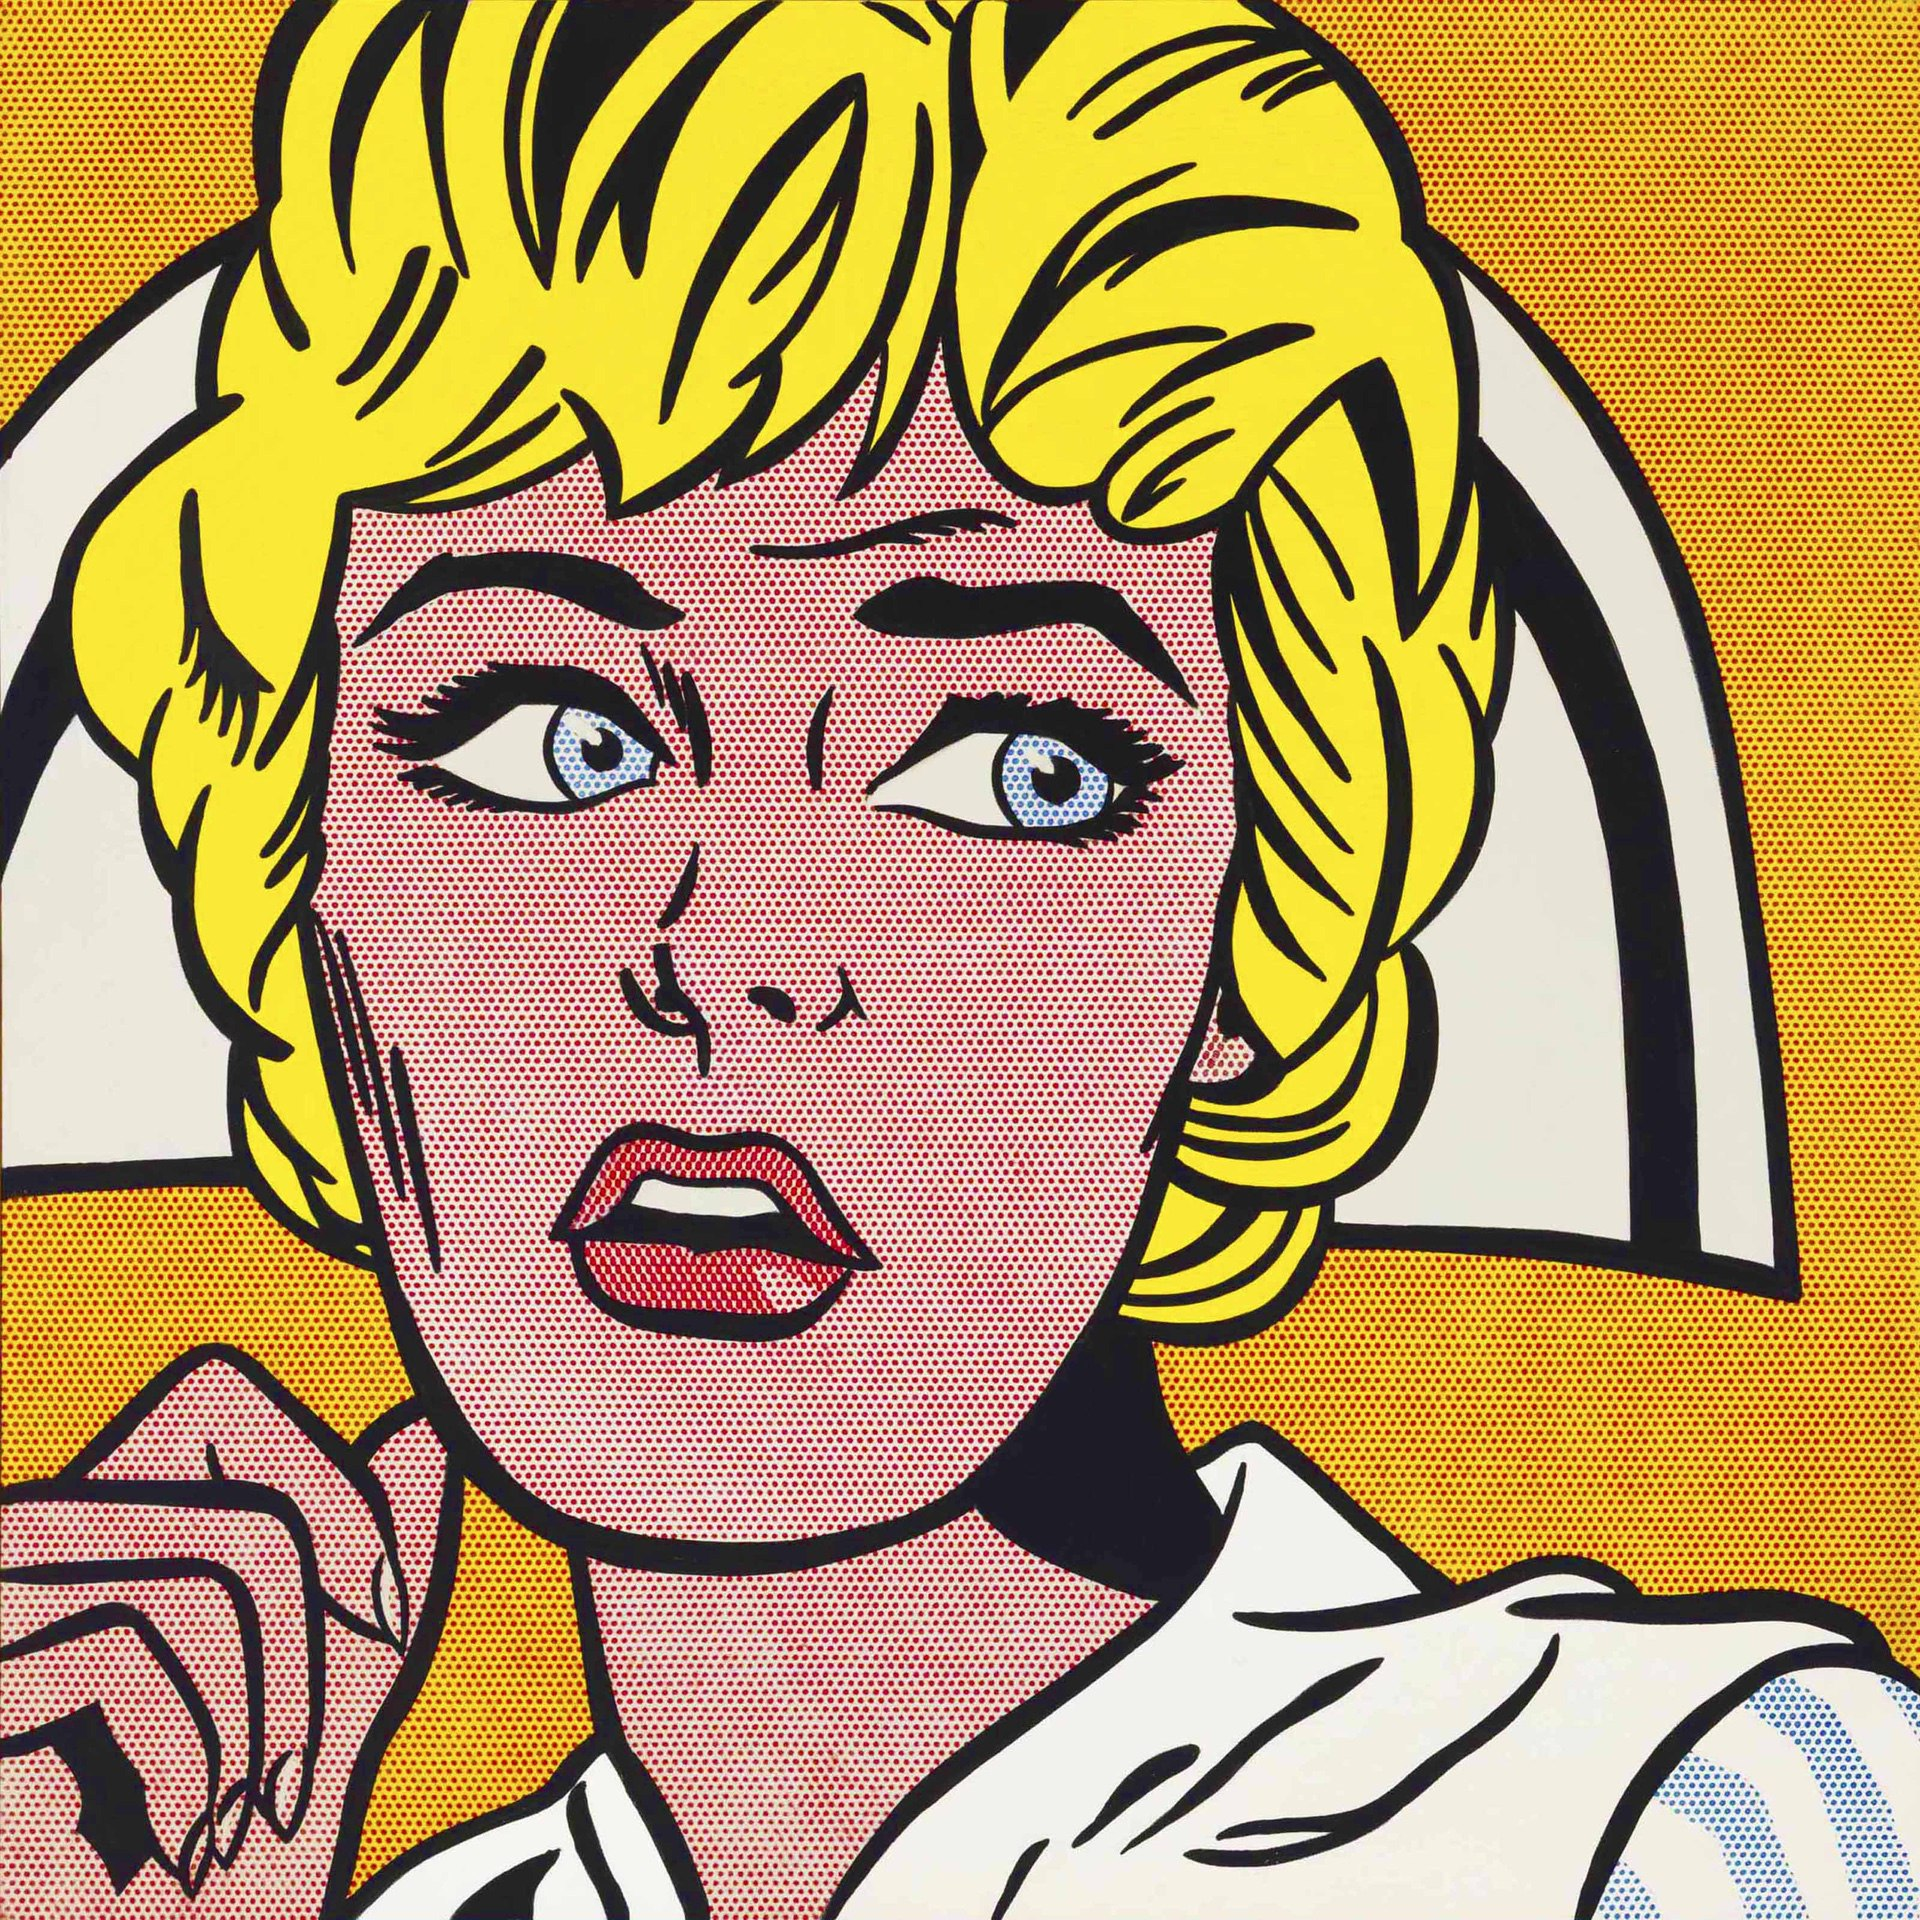 Nurse (1964) by Roy Lichtenstein - Pako Campo